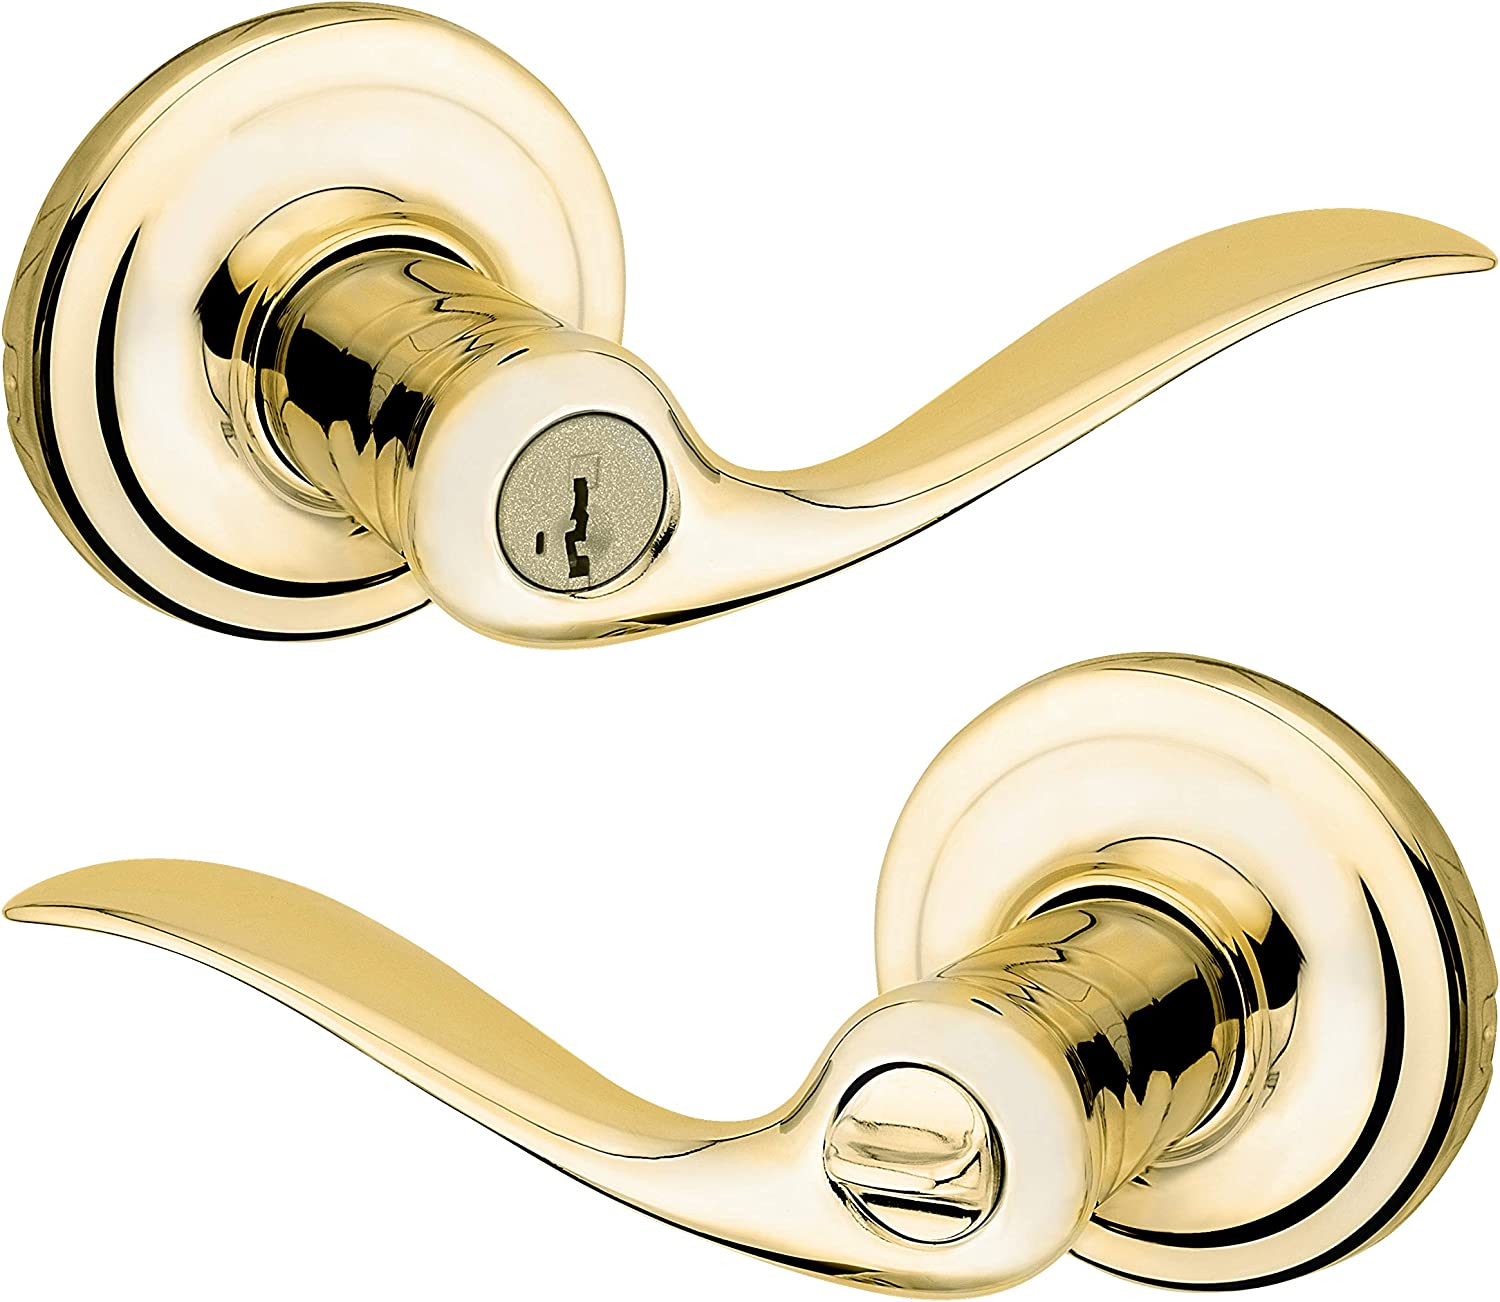 Complete Free Shipping Kwikset 97402-731 Tustin Japan Maker New Entry Polished Lever Brass